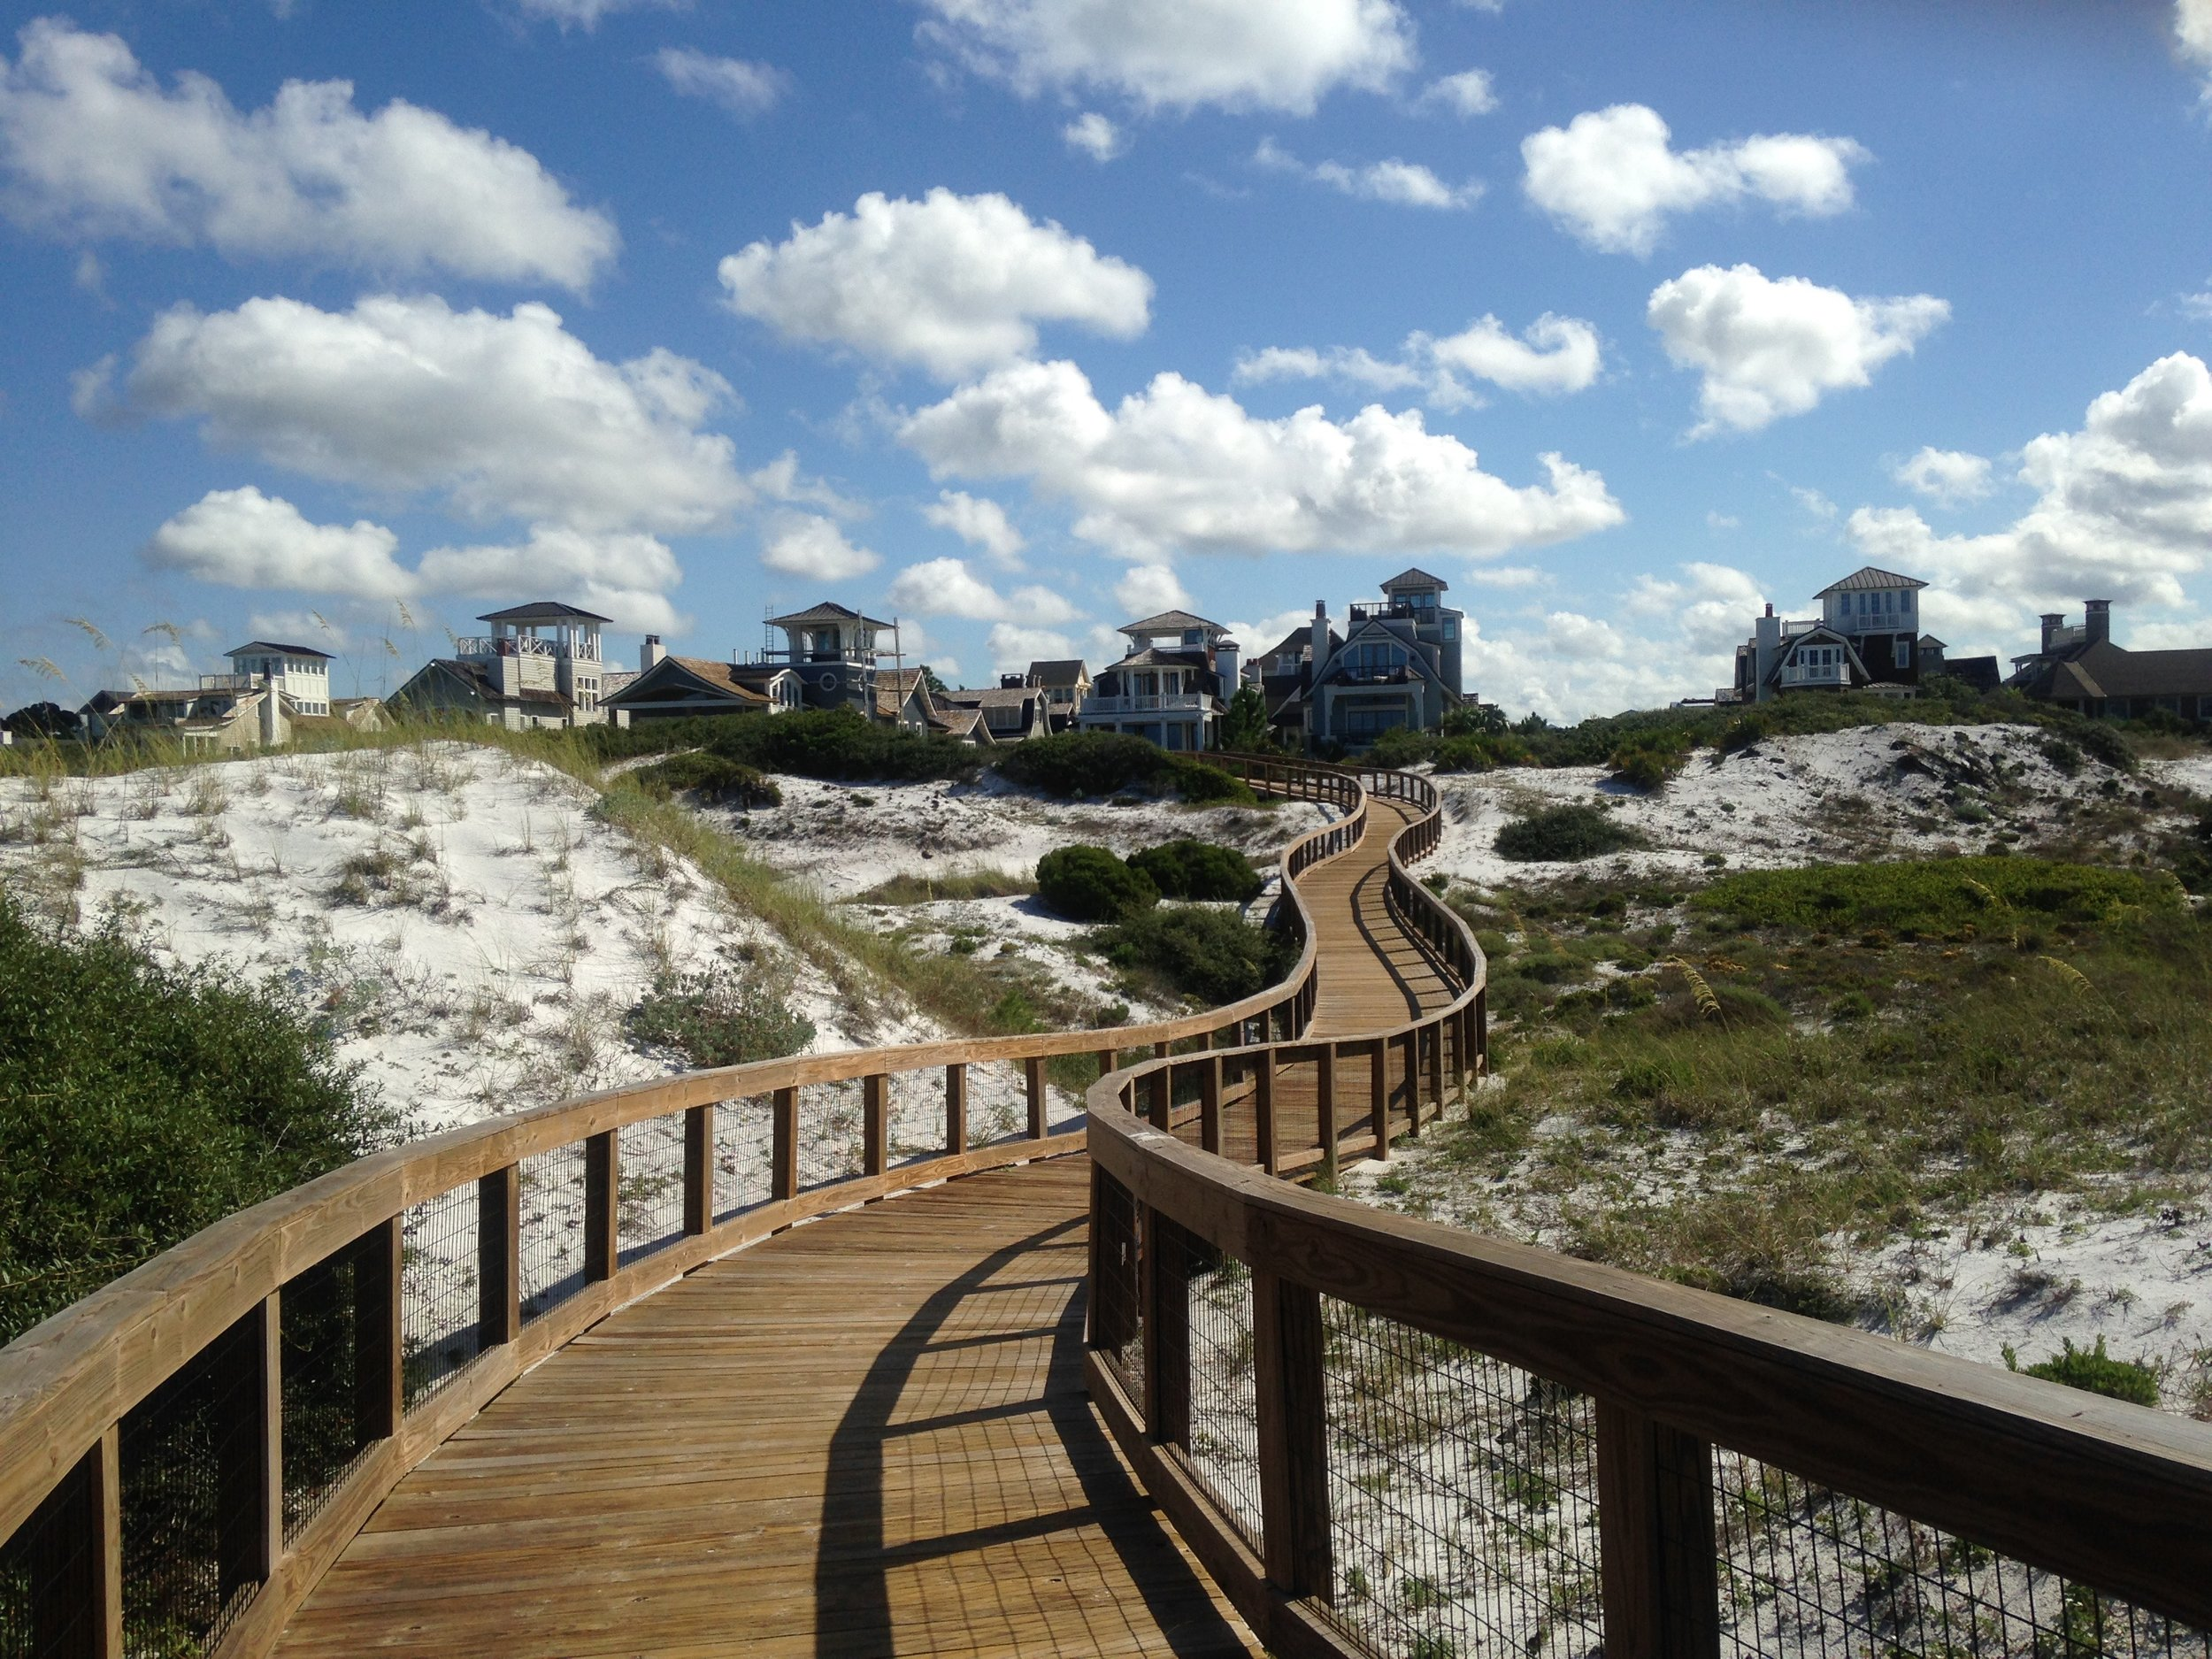 Pathway to the beach, Watersound. Photo by Chic Travels